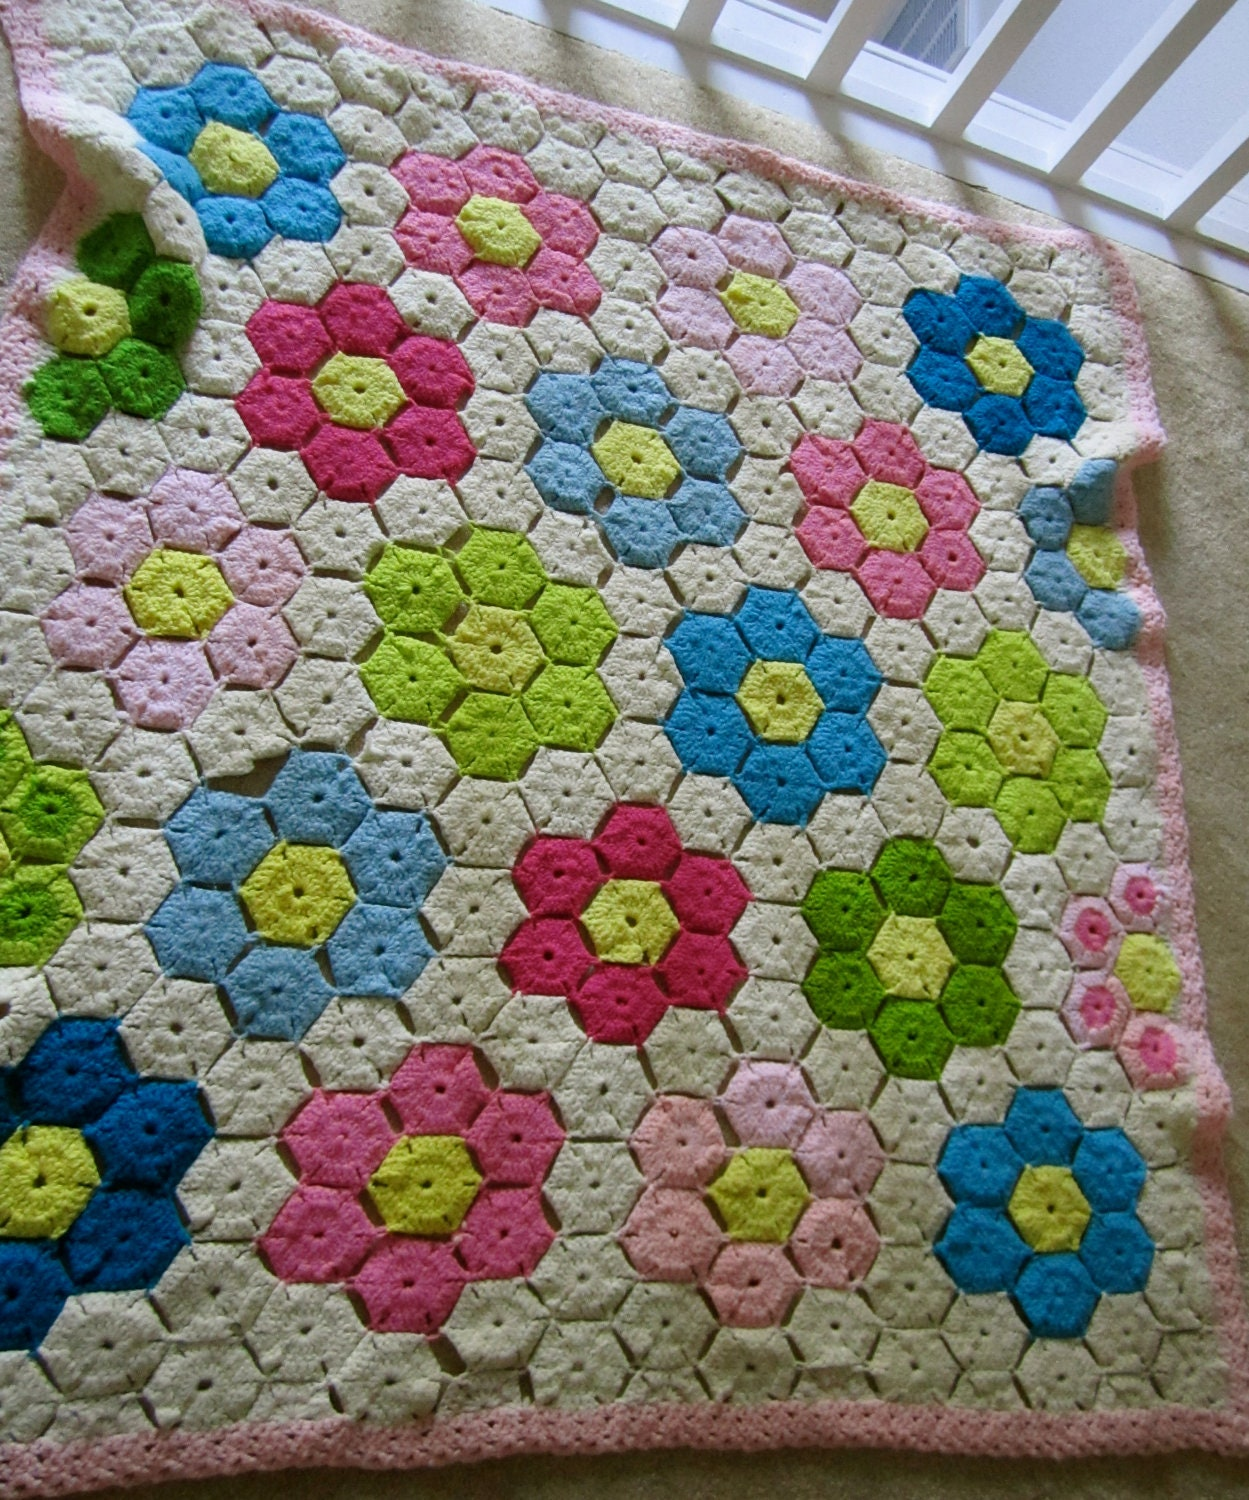 Vintage Hexagon Shaped Crocheted Baby blanket pink bright